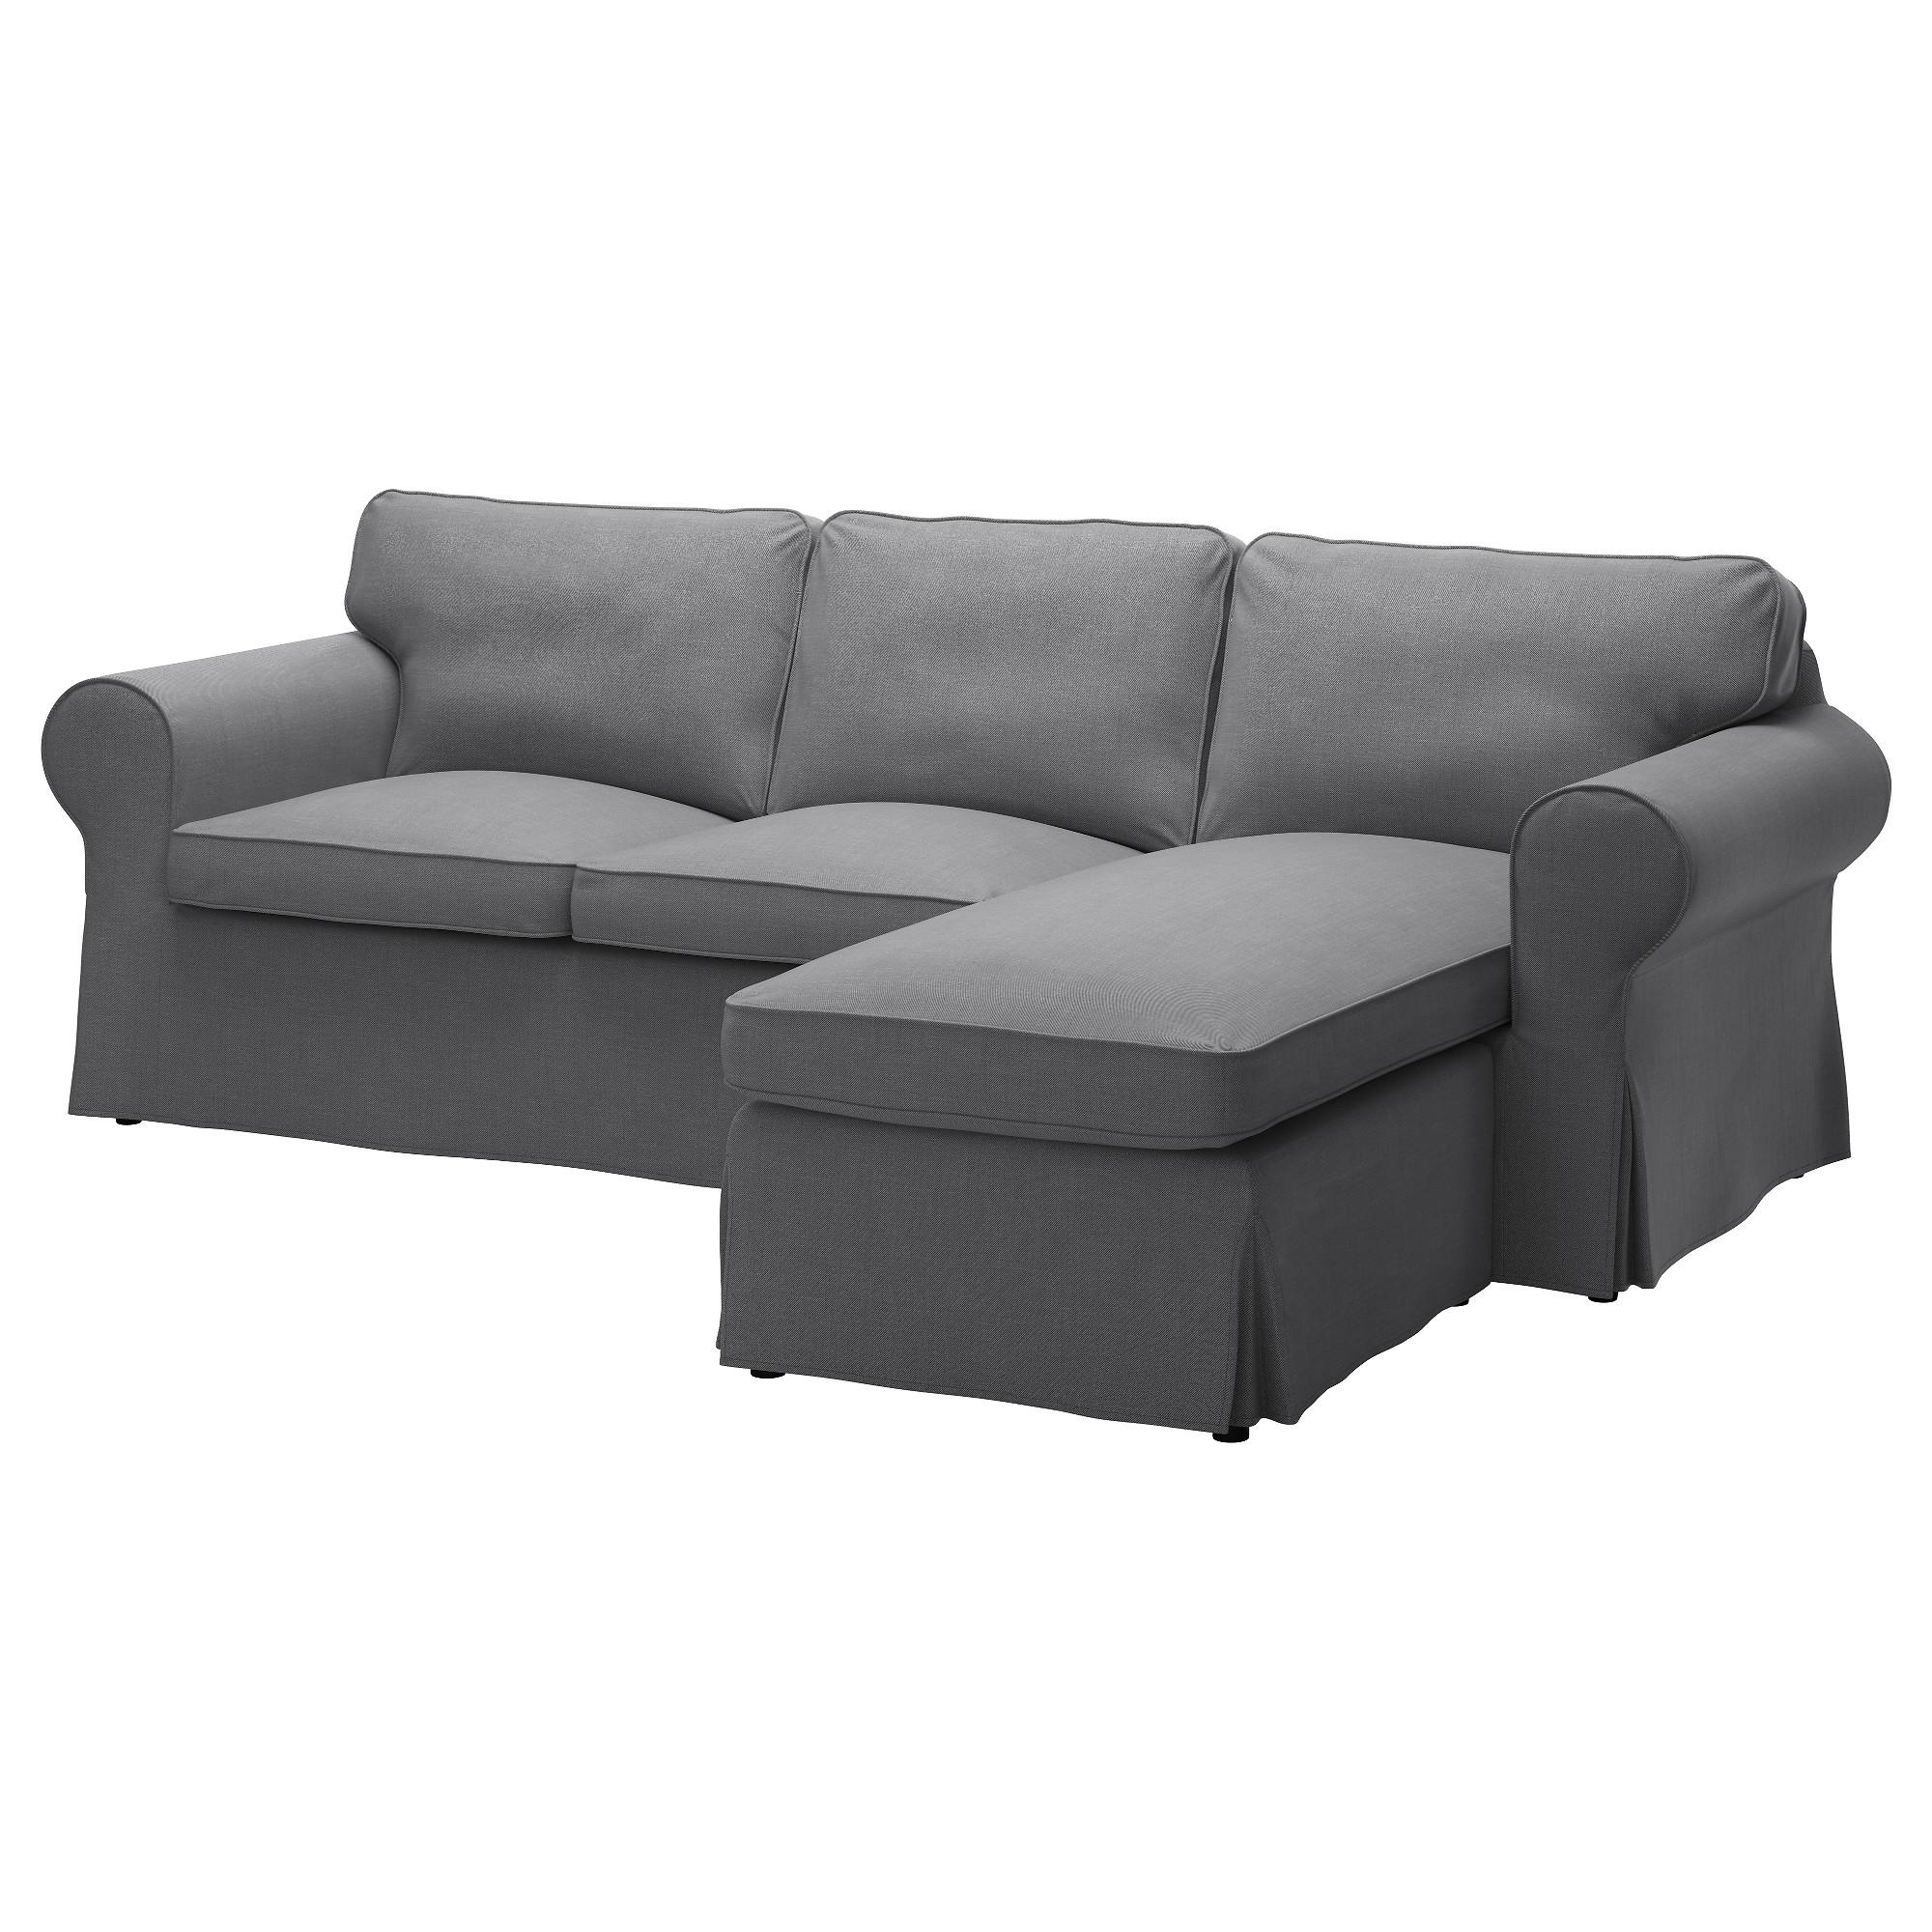 Ektorp 3 Seat Sofa With Chaise Longue/nordvalla Dark Grey – Ikea Intended For Sofas With Chaise Longue (Image 6 of 20)